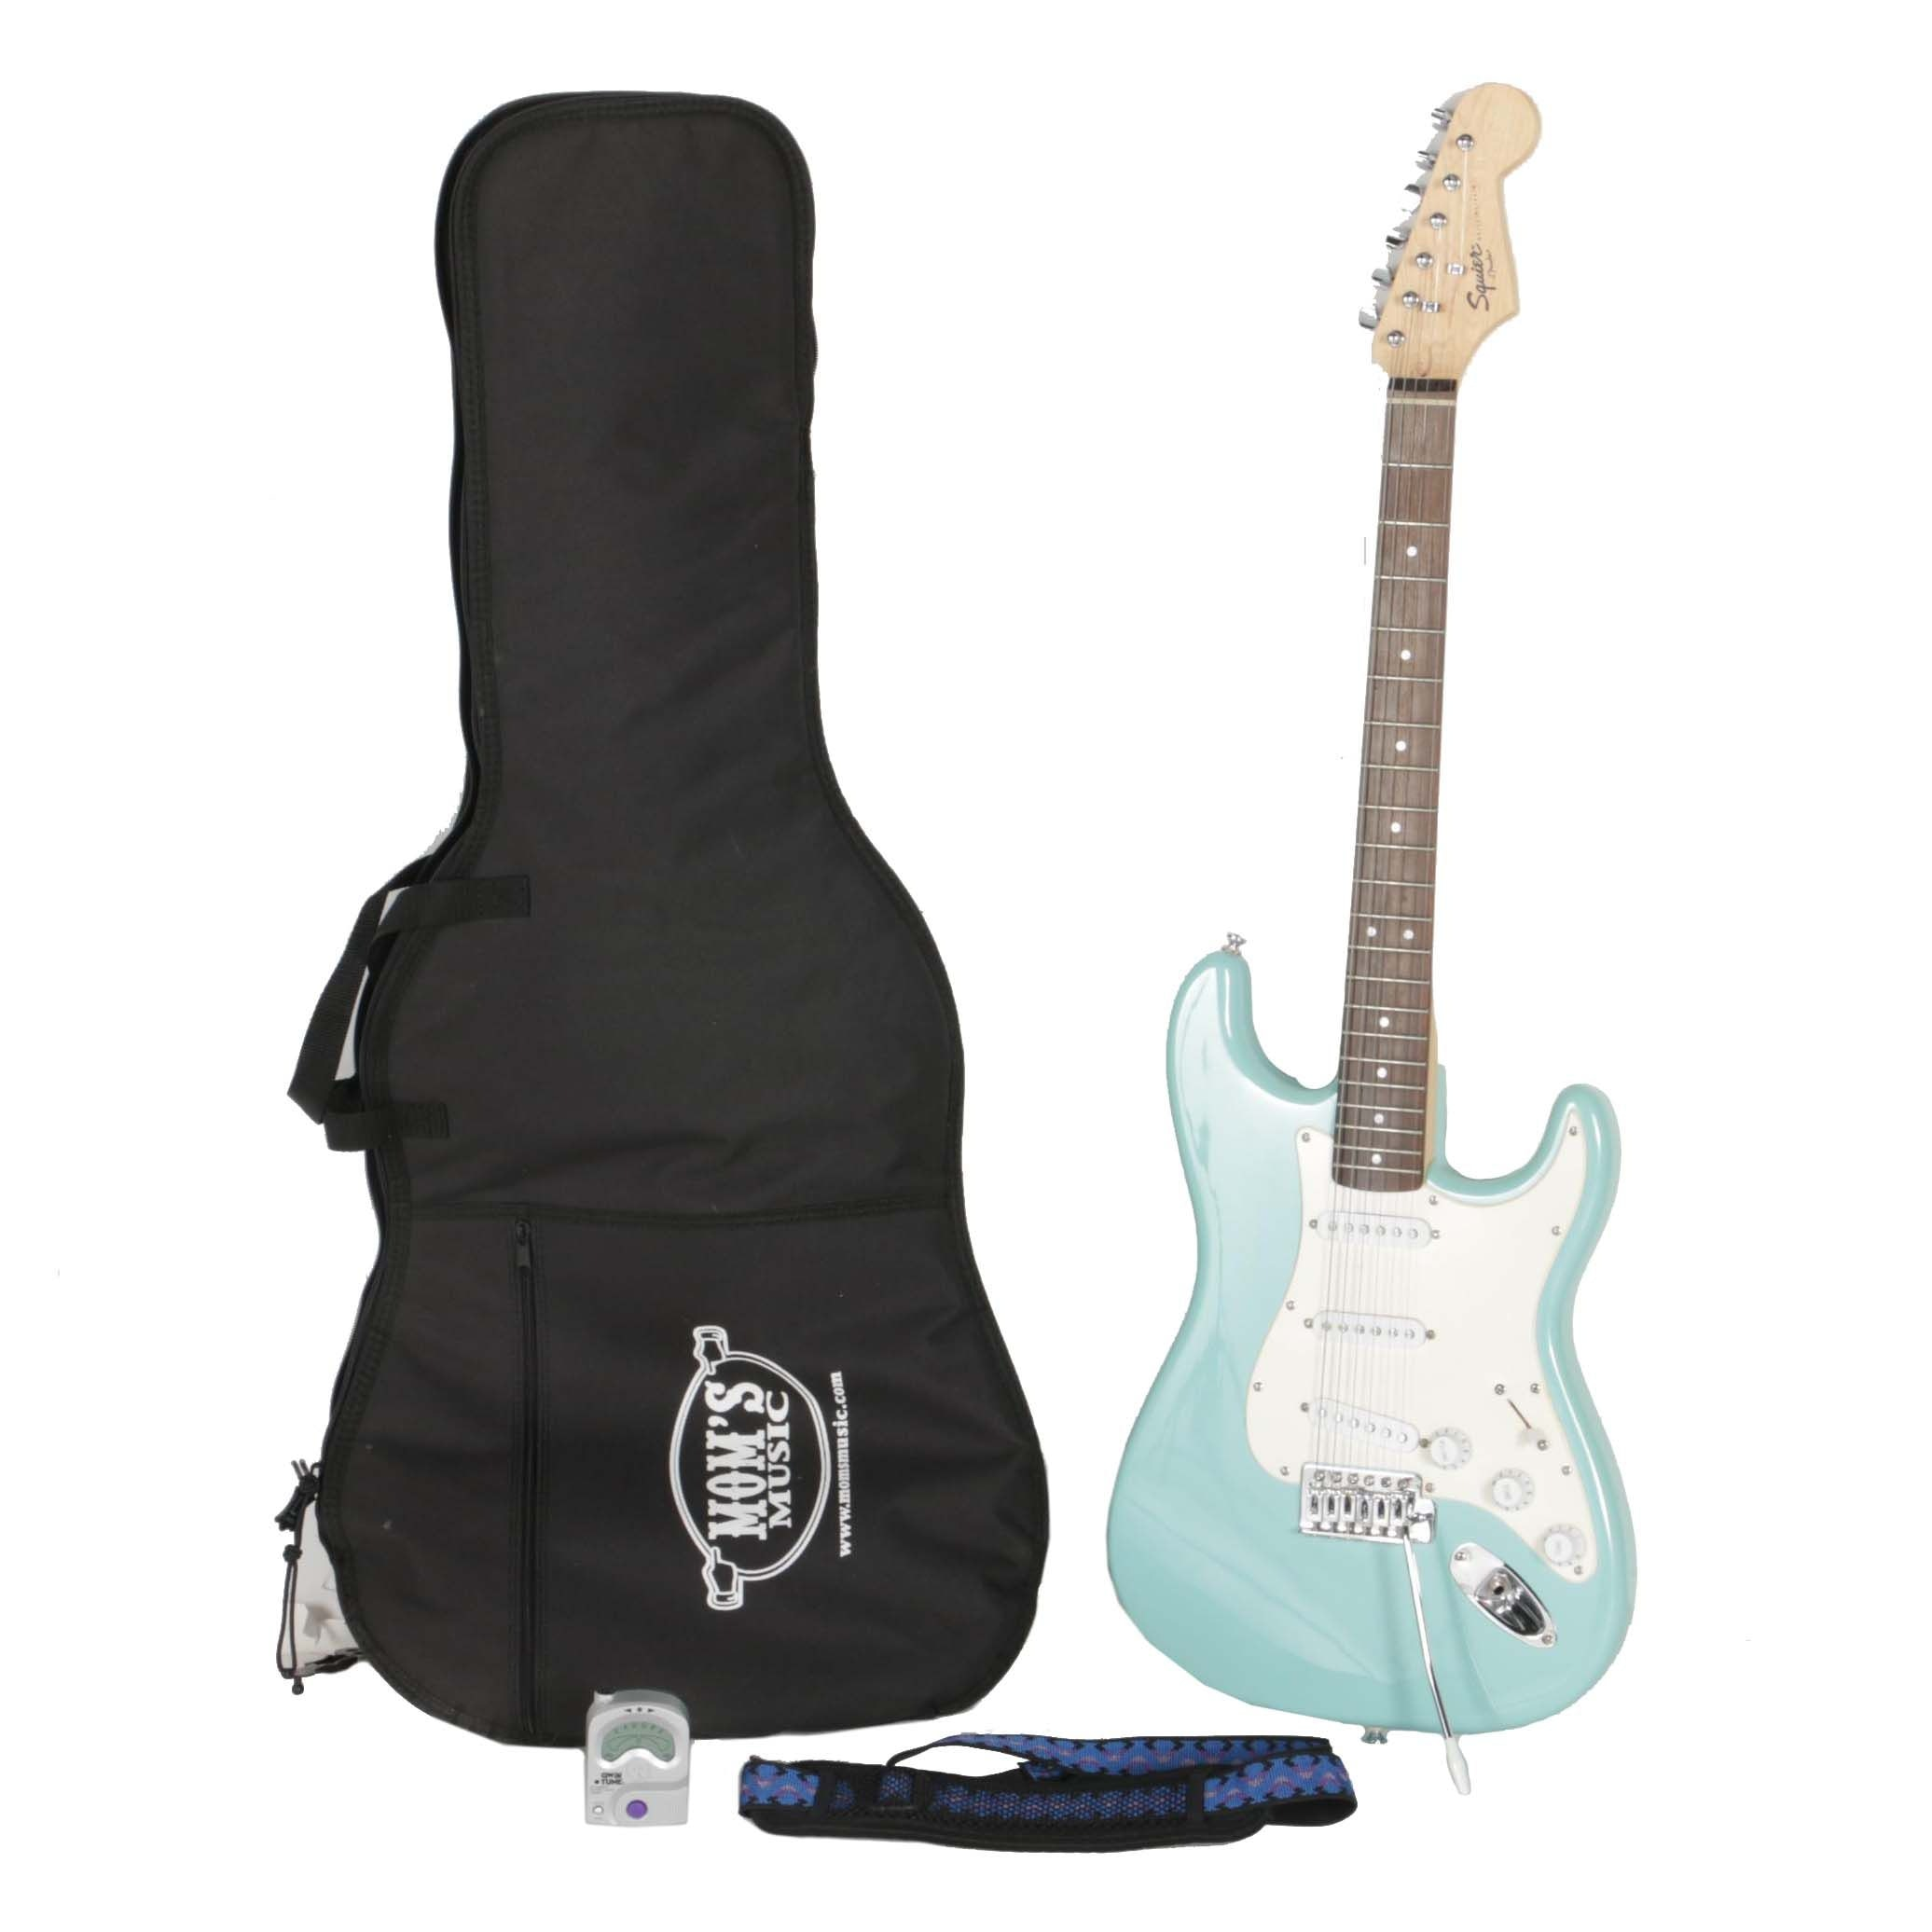 Squier by Fender Bullet Strat Electric Guitar and Accessories